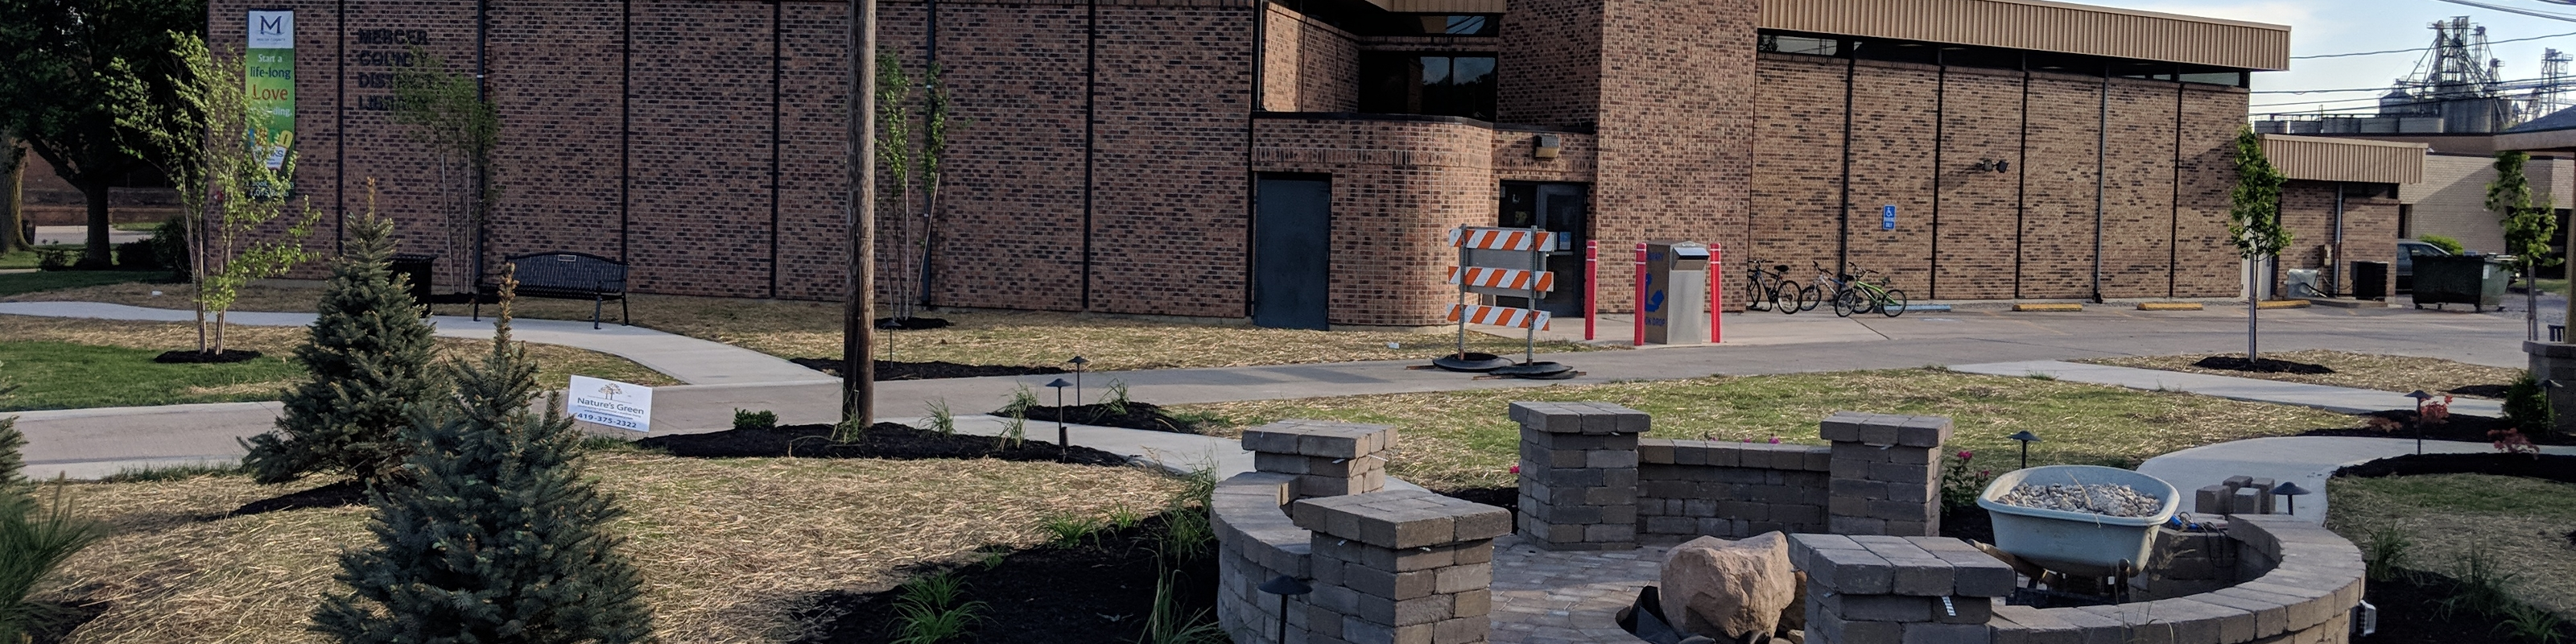 Marilyn Frahm Memorial Library Park Project